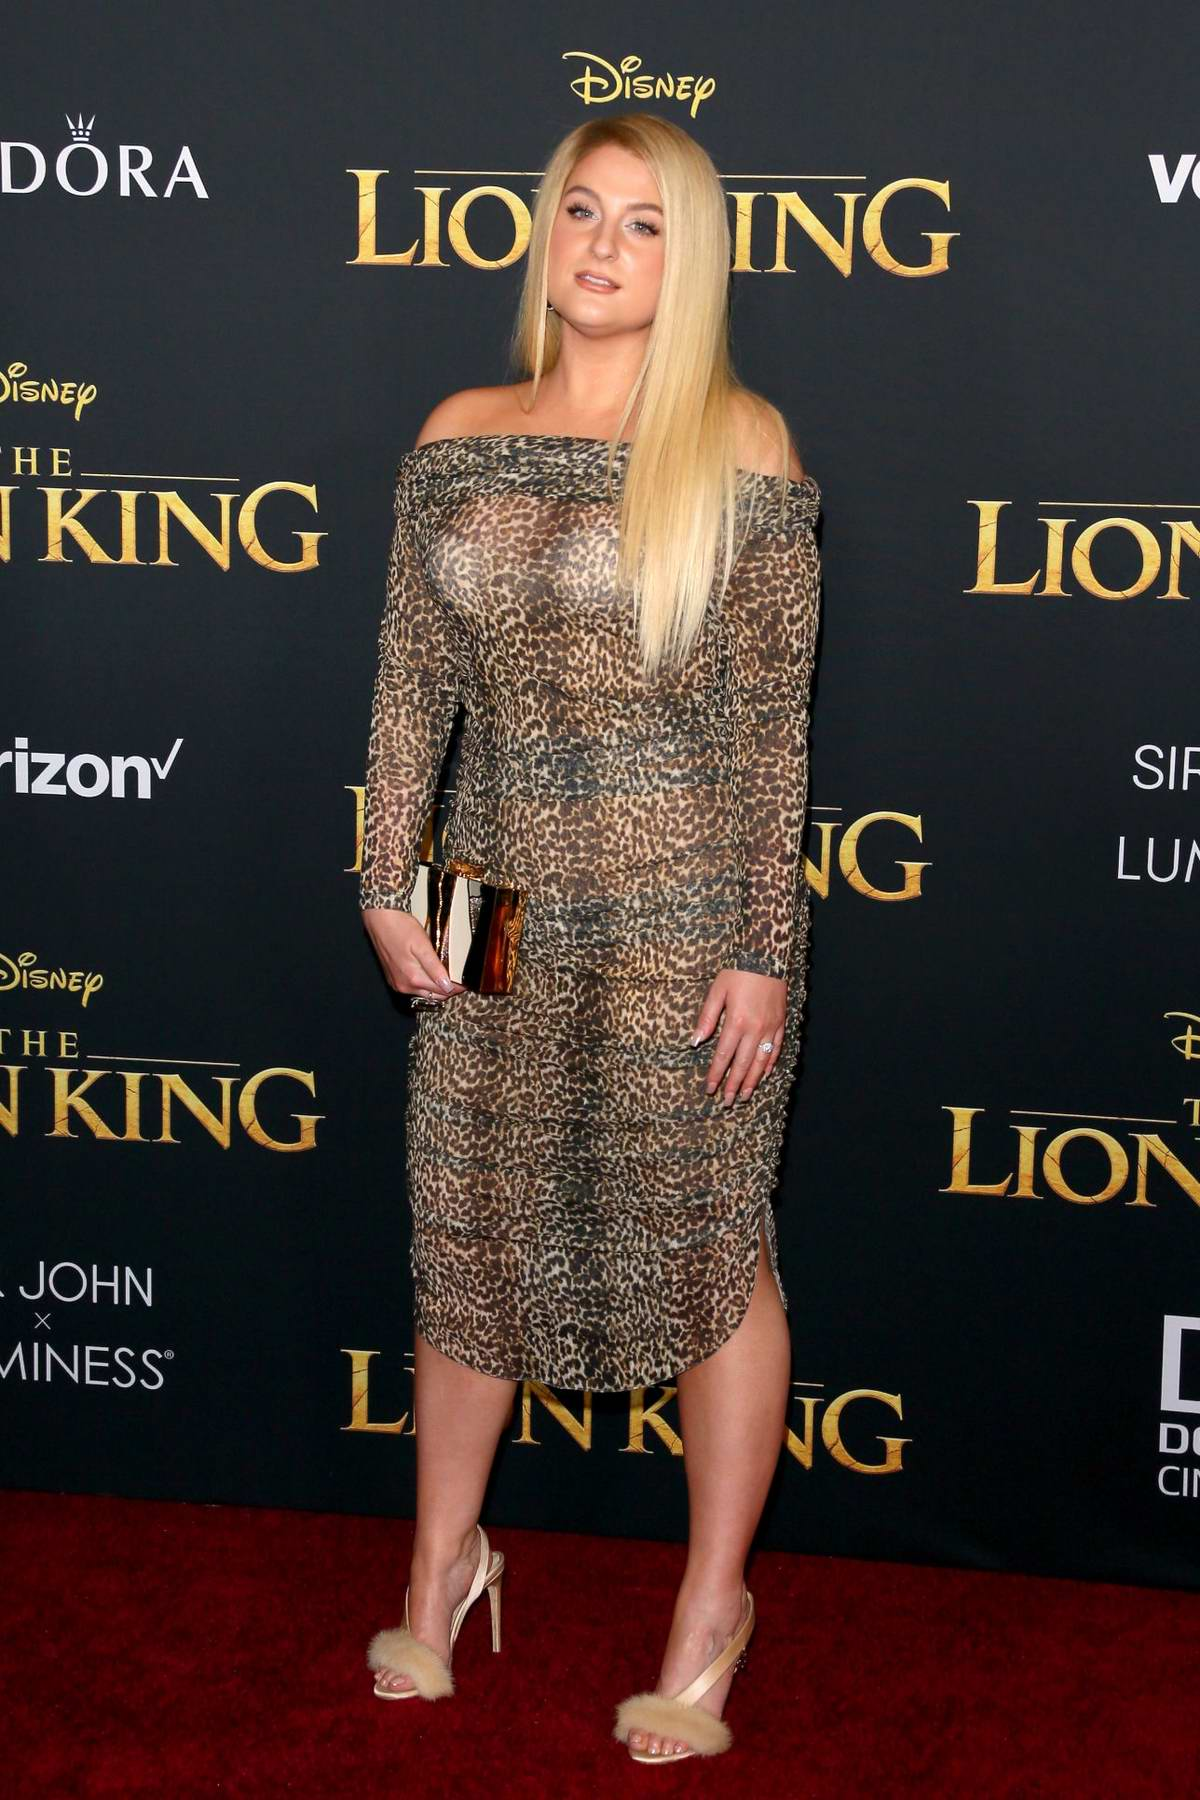 Meghan Trainor attends the premiere of Disney's 'The Lion King' at Dolby Theatre in Hollywood, California